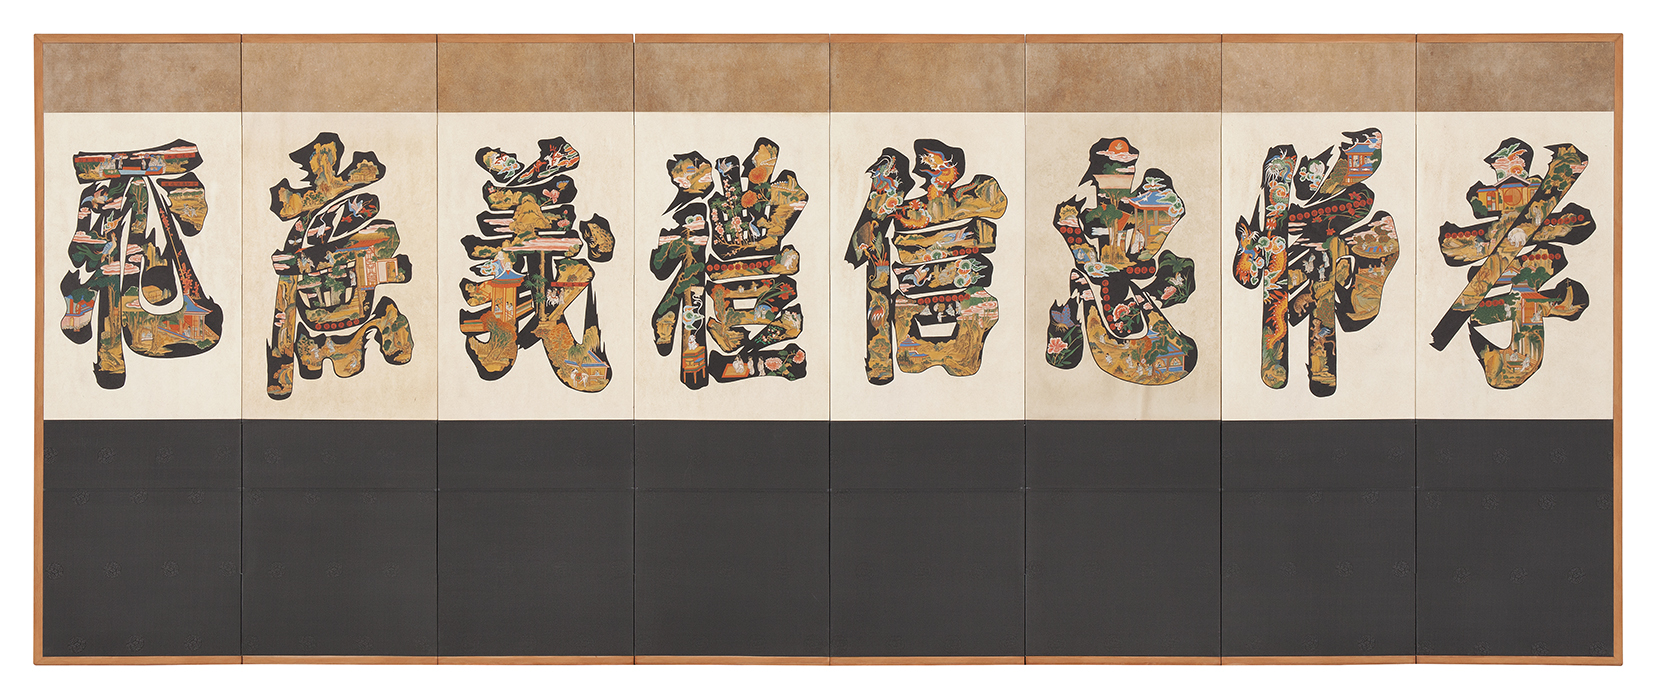 Moonjado, 2010, Color on Korean paper, (44 x 68 cm) x 8panels